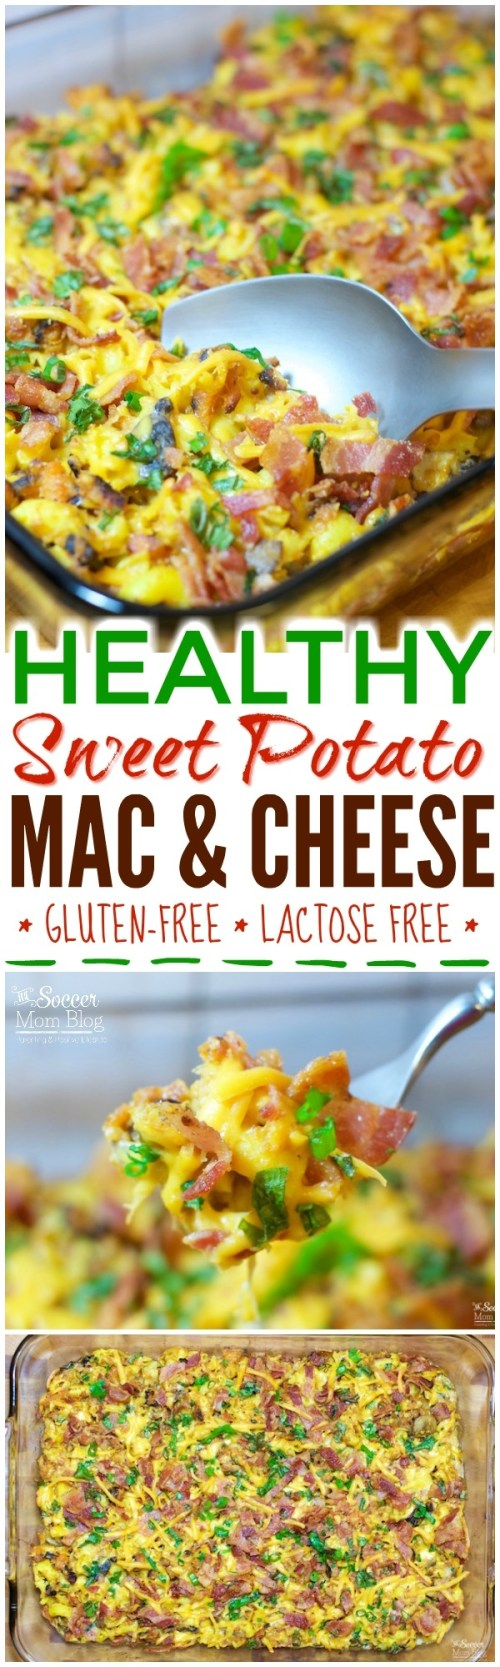 Rich, creamy, savory...and GOOD for you?! This Sweet Potato Mac & Cheese will satisfy your cravings PLUS it's gluten free, lactose free, & full of veggies!